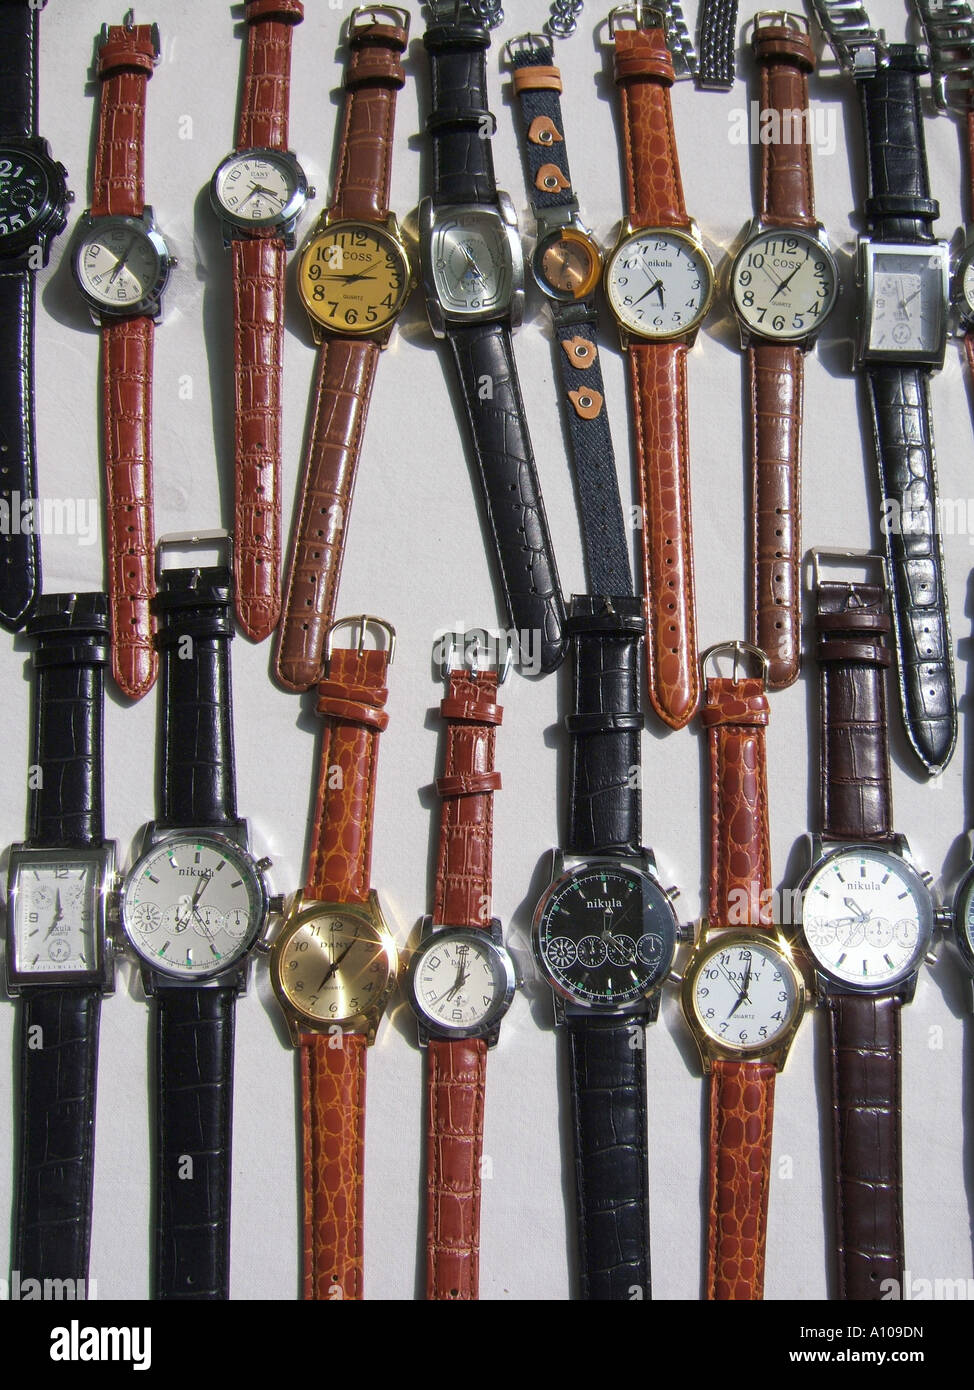 watches in shop window display Stock Photo: 10101104 - Alamy